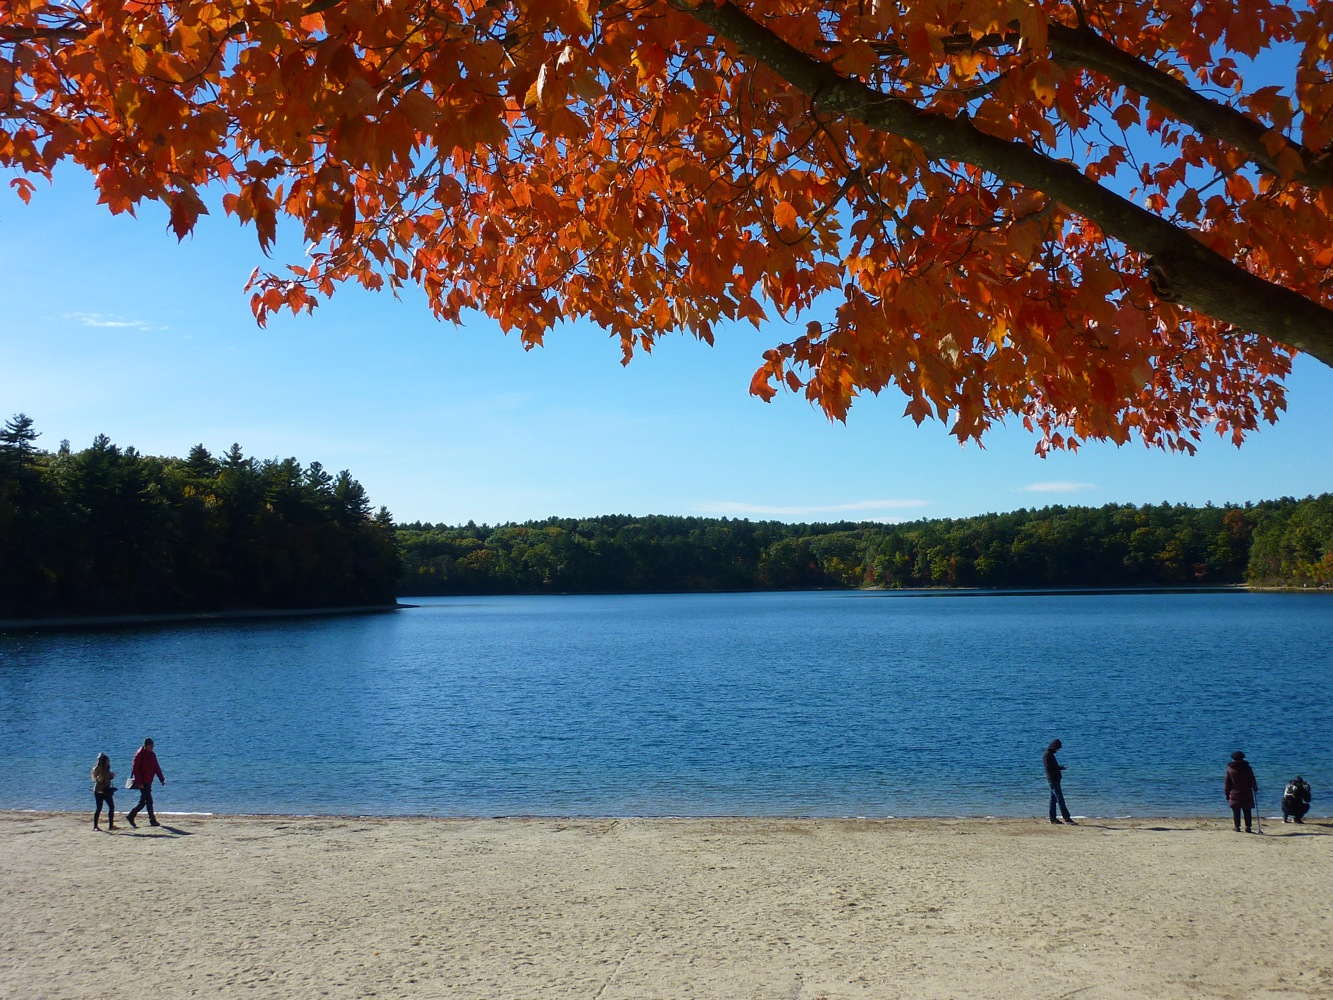 Fall beach scene at Walden Pond in Concord, Massachusetts.